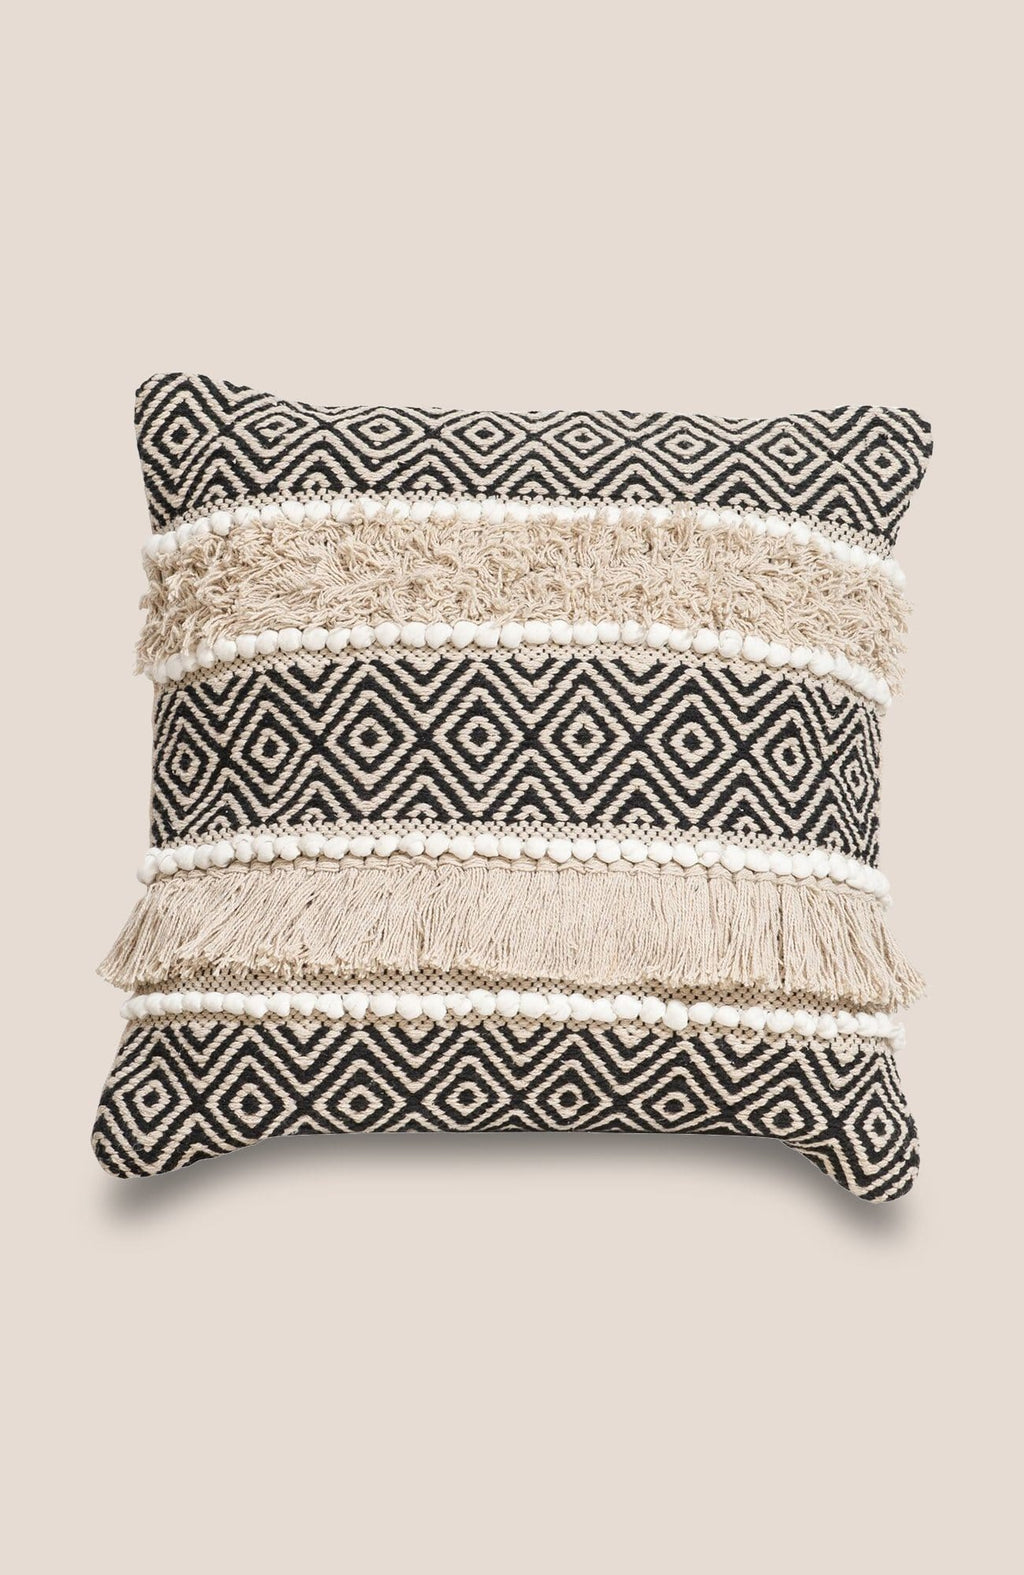 Geometric Boho Pillow Cover - Tribe - Home Decor | Shop Baskets, Ceramics, Pillows, Rugs & Wall Hangs online